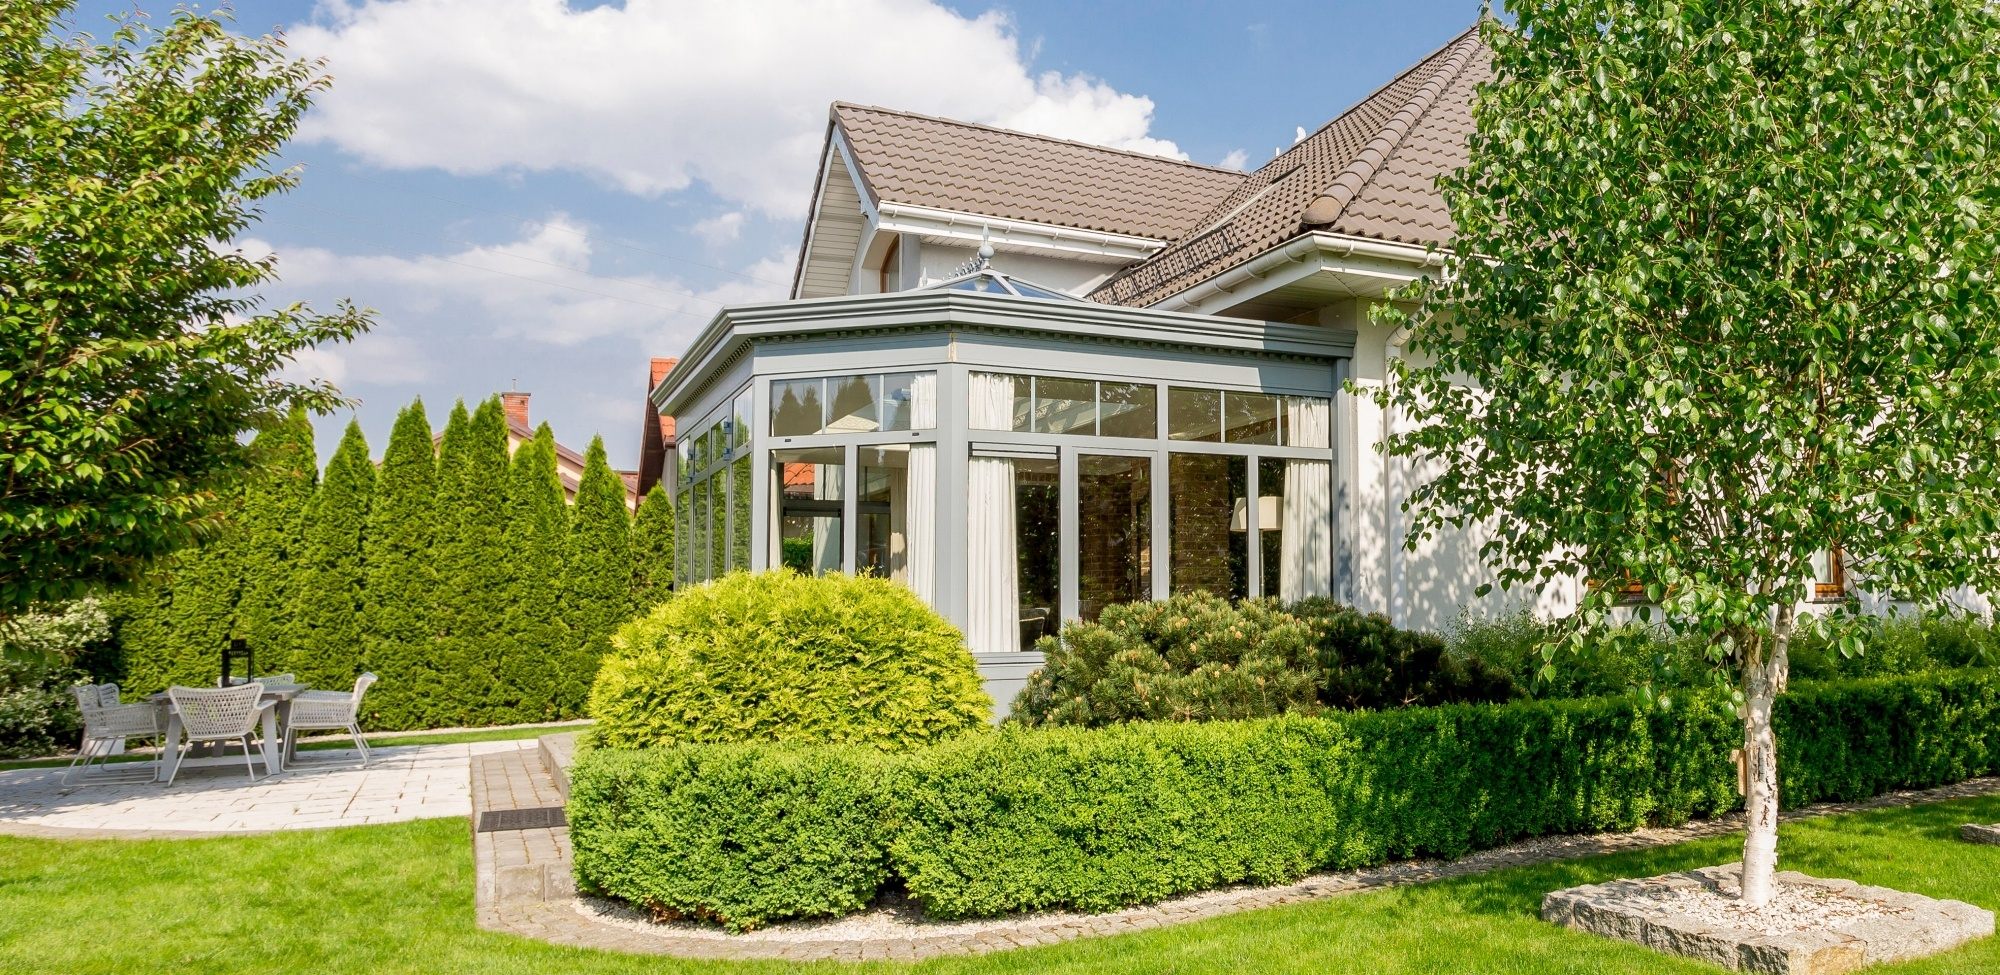 What's the difference between uPVC and Aluminium Conservatories?